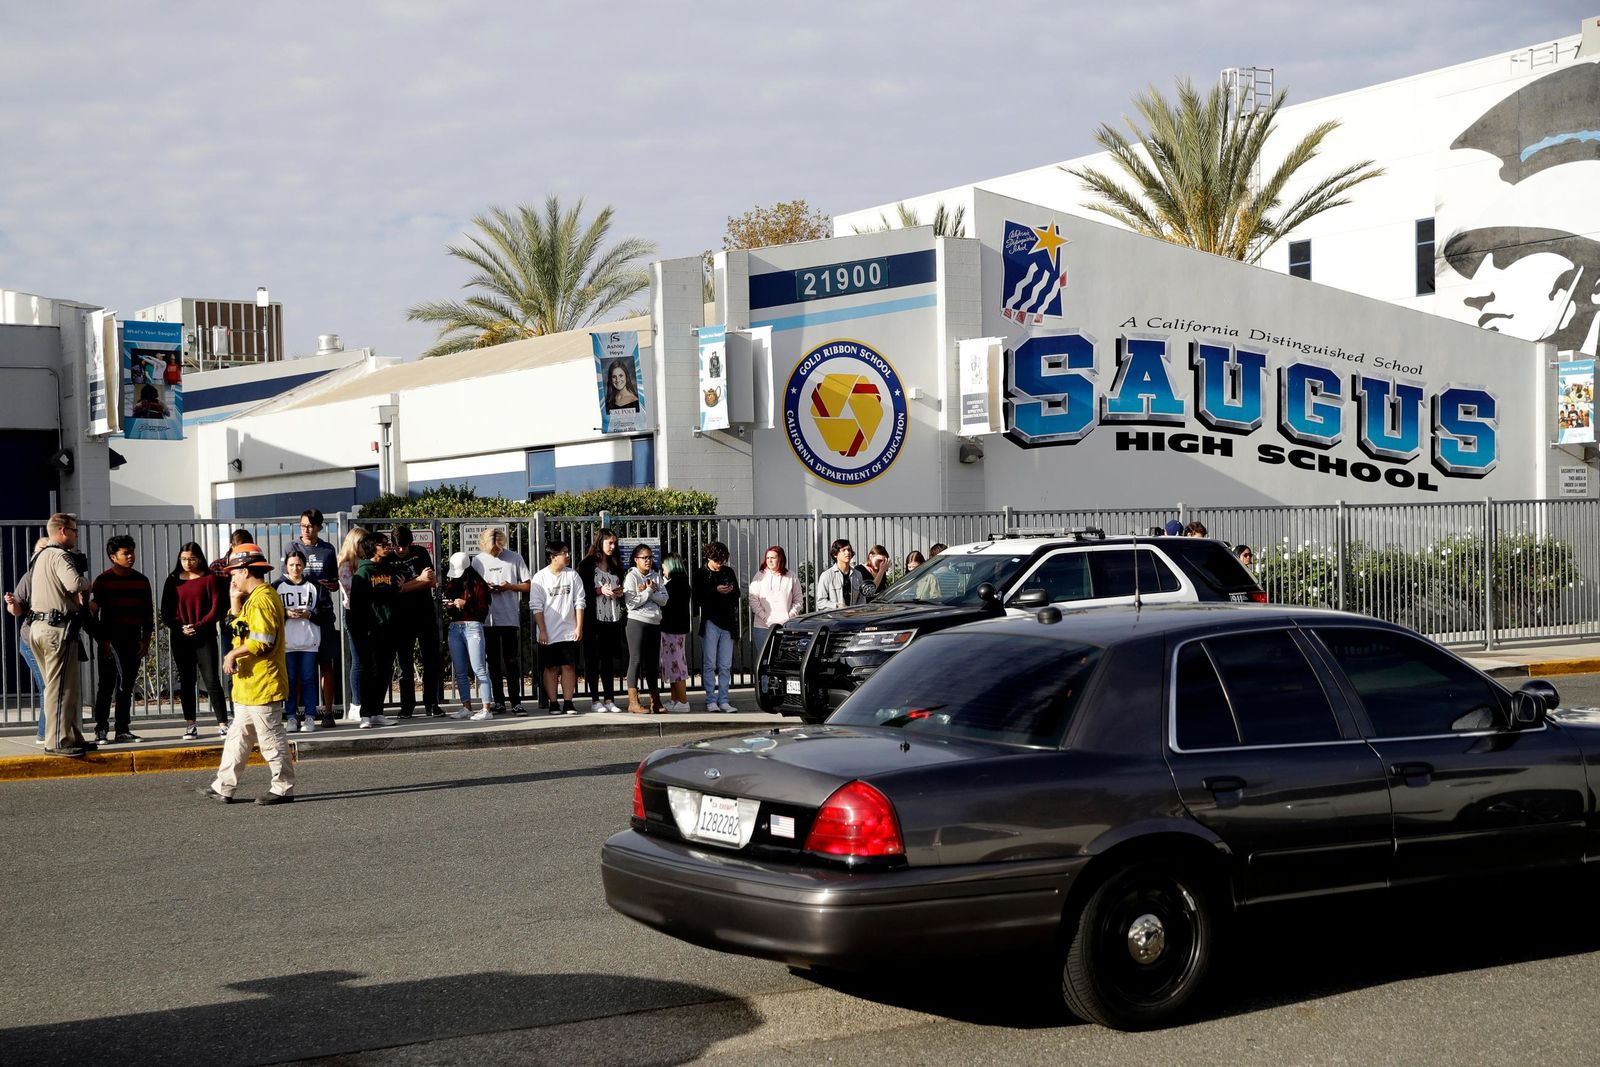 Students stand outside of Saugus High School after reports of a shooting on Thursday, Nov. 14, 2019, in Santa Clarita, Calif. (AP Photo/Marcio Jose Sanchez)